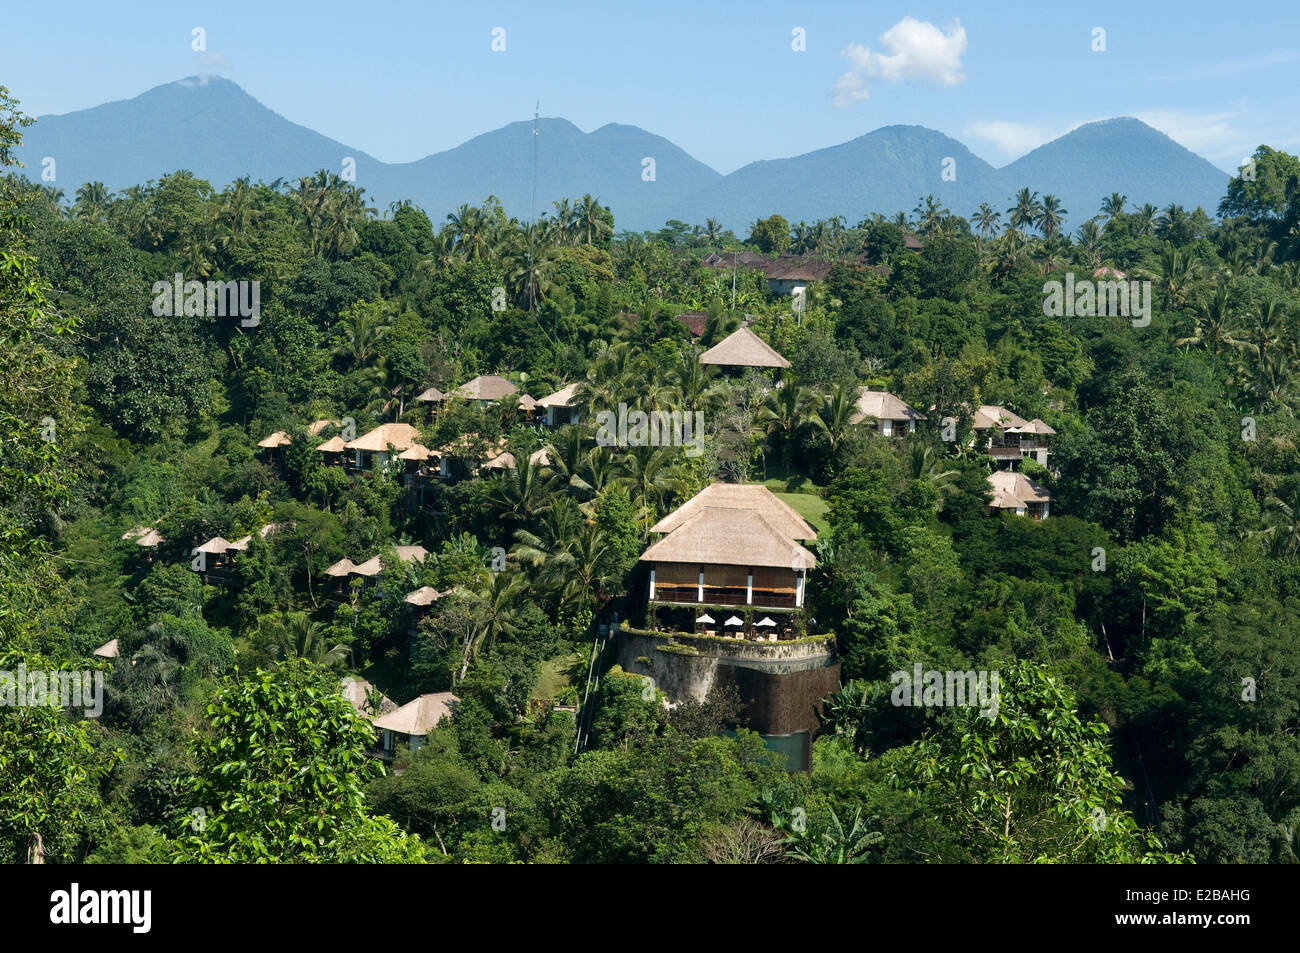 Indonesia, Bali, Ubud, Buhan Payangan, Ubud Hanging Gardens hotel group Orient Express overview of the hotel in - Stock Image